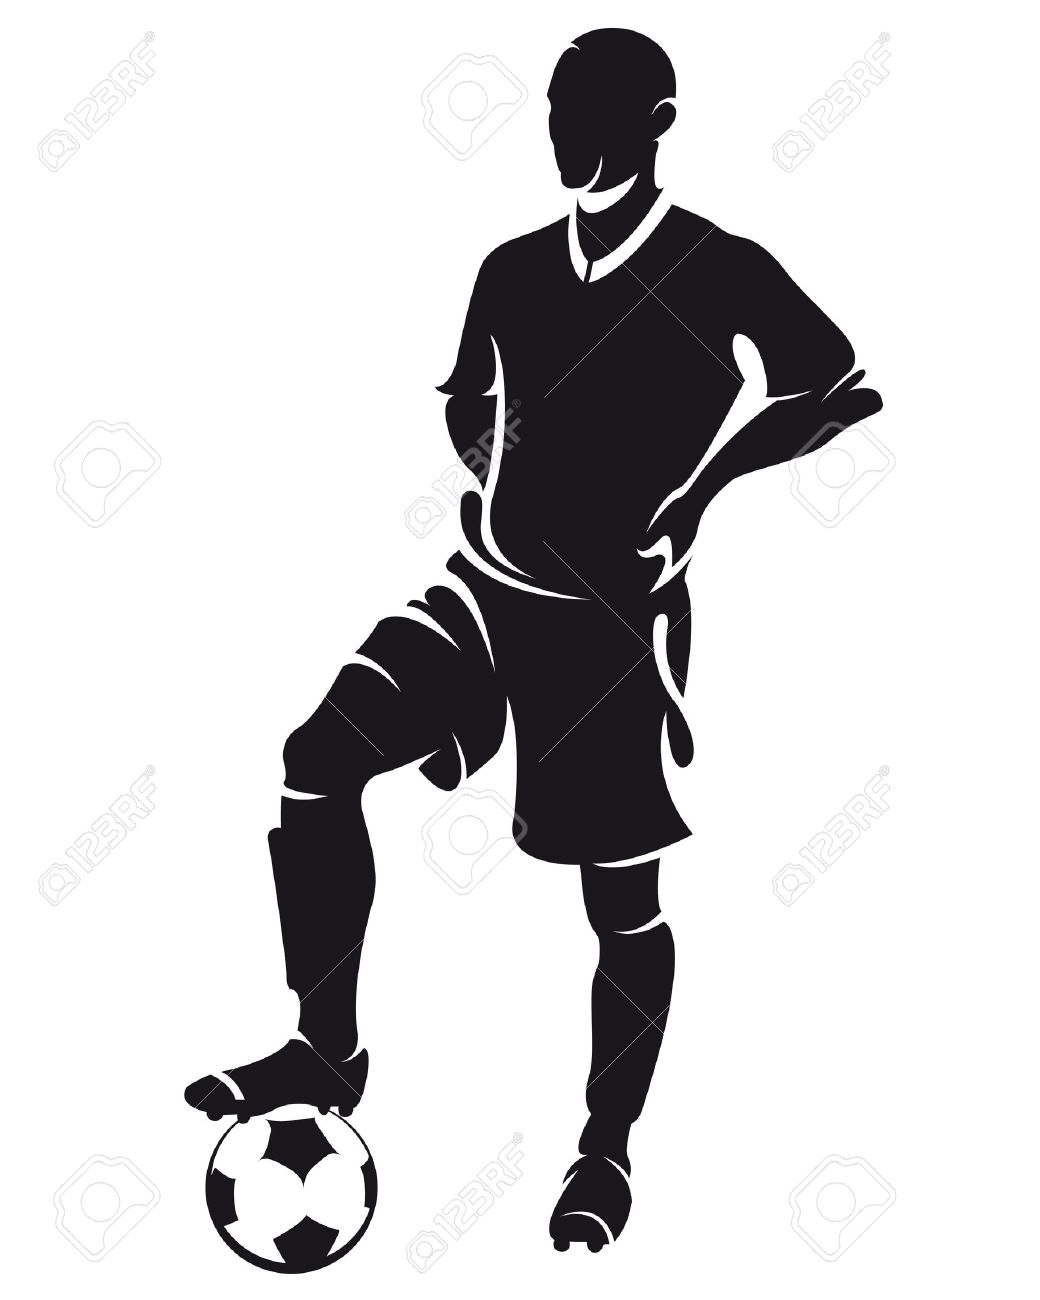 1040x1300 Vector Football (Soccer) Player Standing Silhouette With Ball